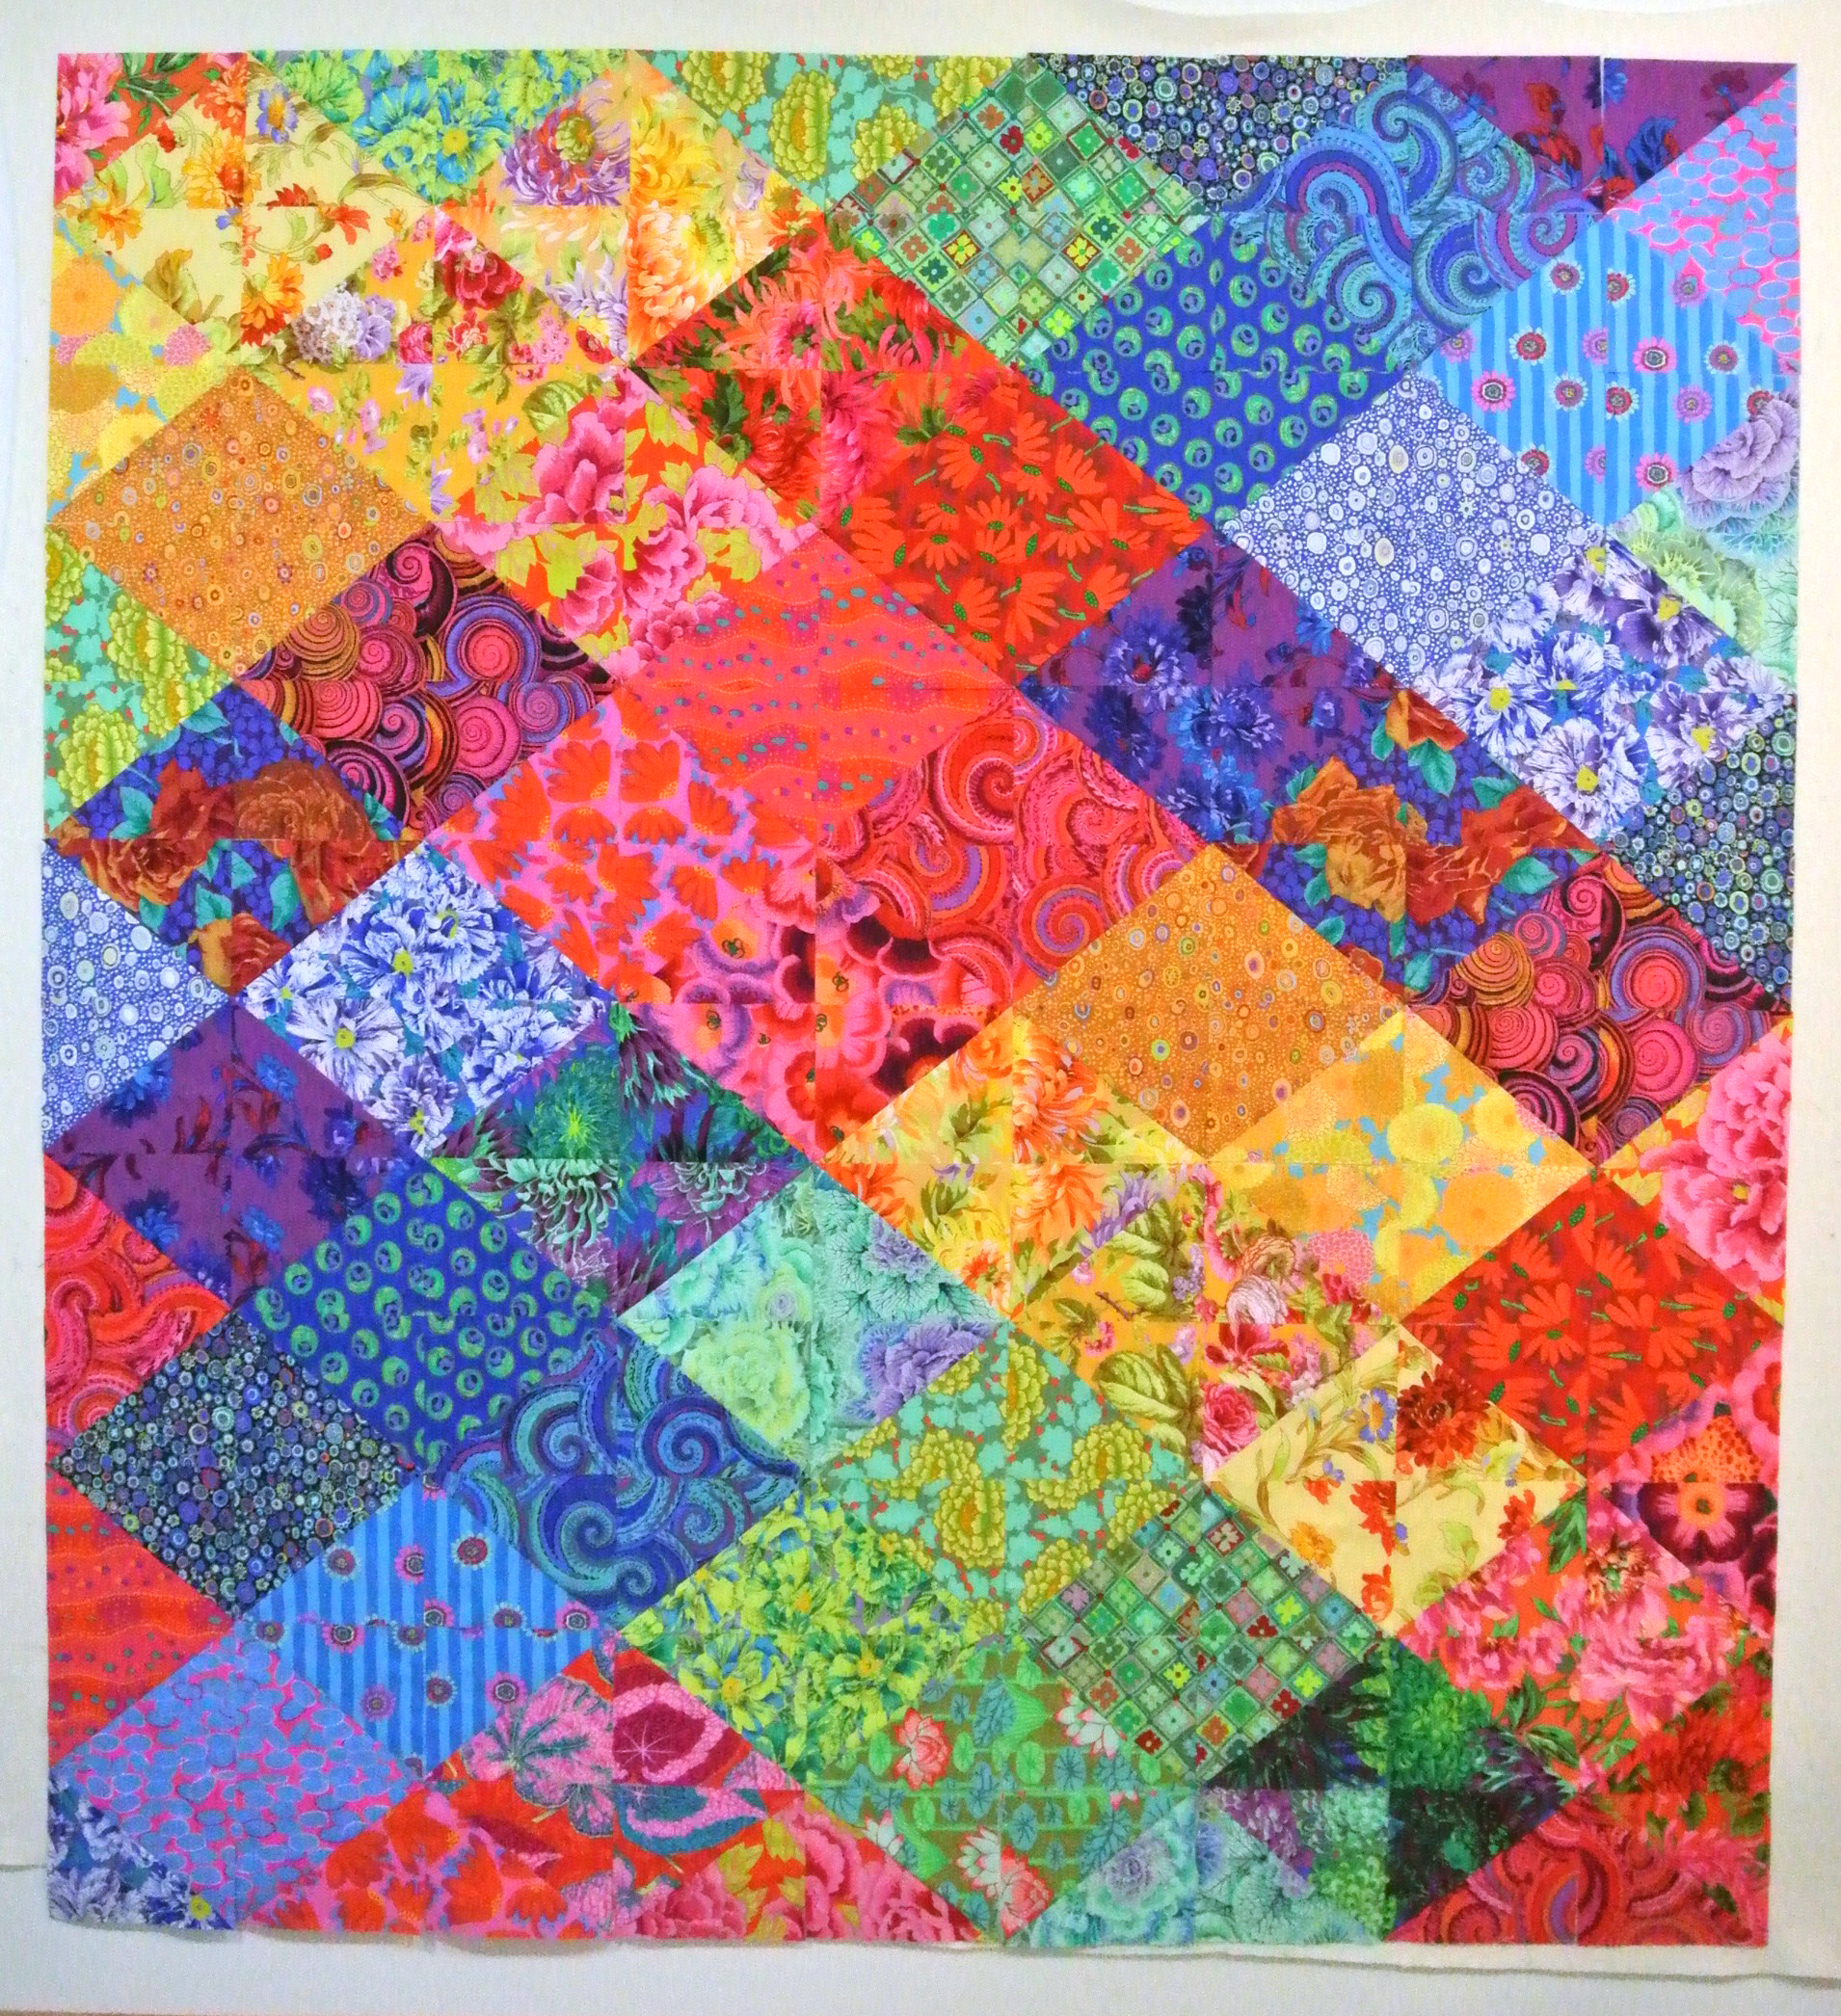 market lillybimble preview quilt patterns backgrounds aztecquilt creative aztec